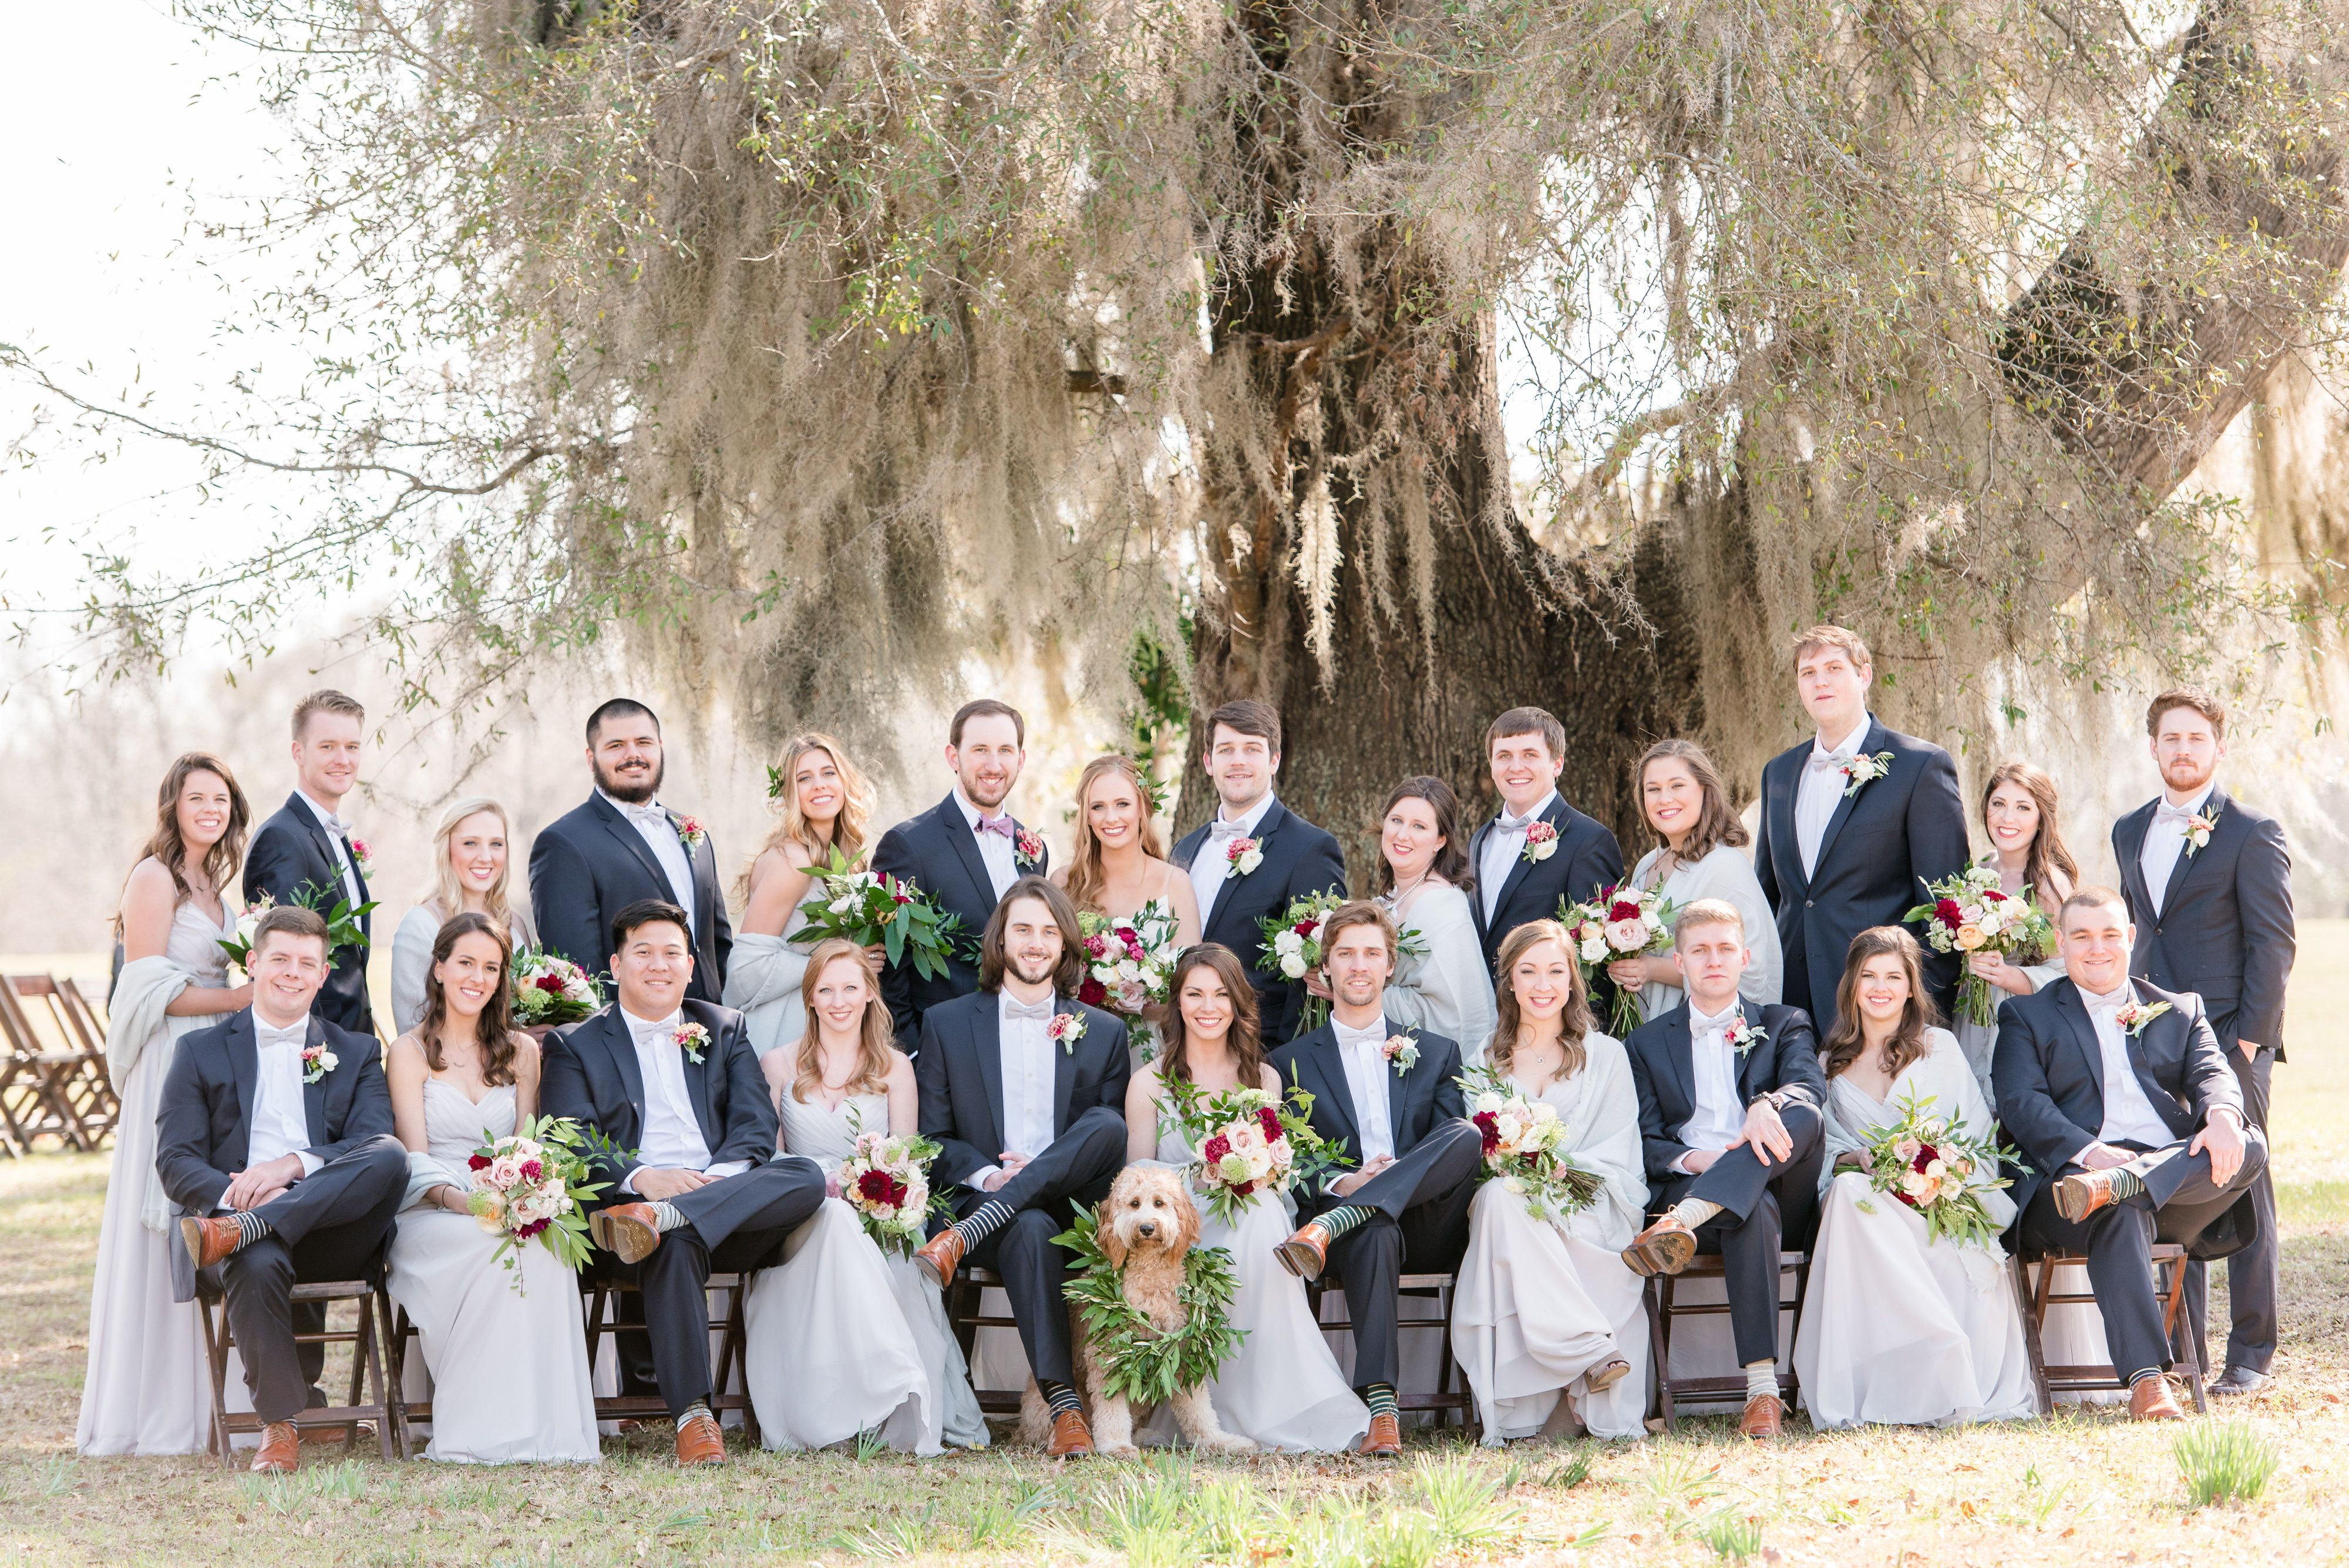 Grey Bridesmaid Dresses And Blue Suits